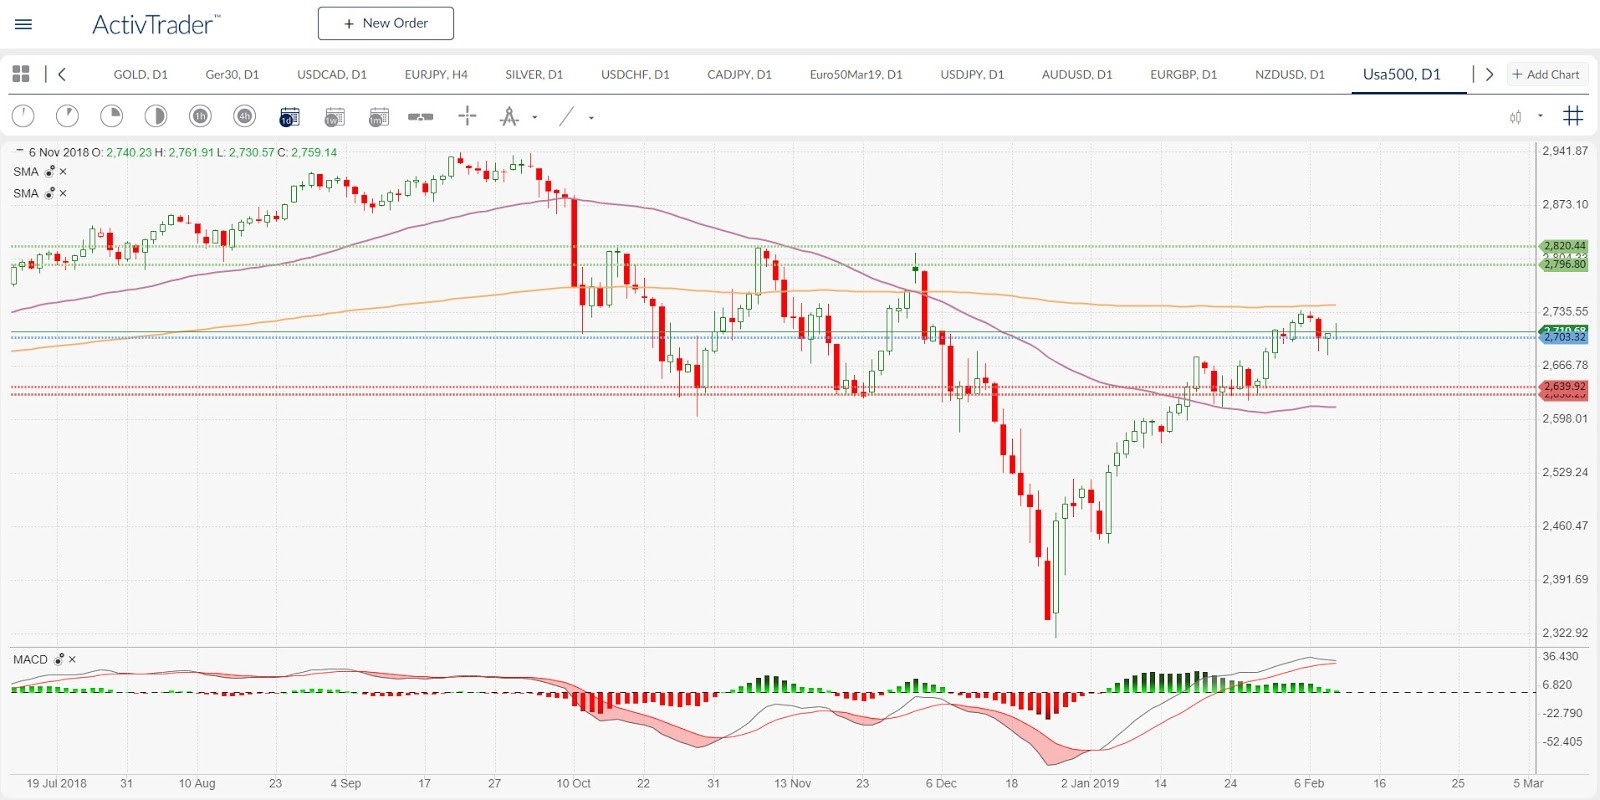 US500 Daily Chart | Source: ActivTrader